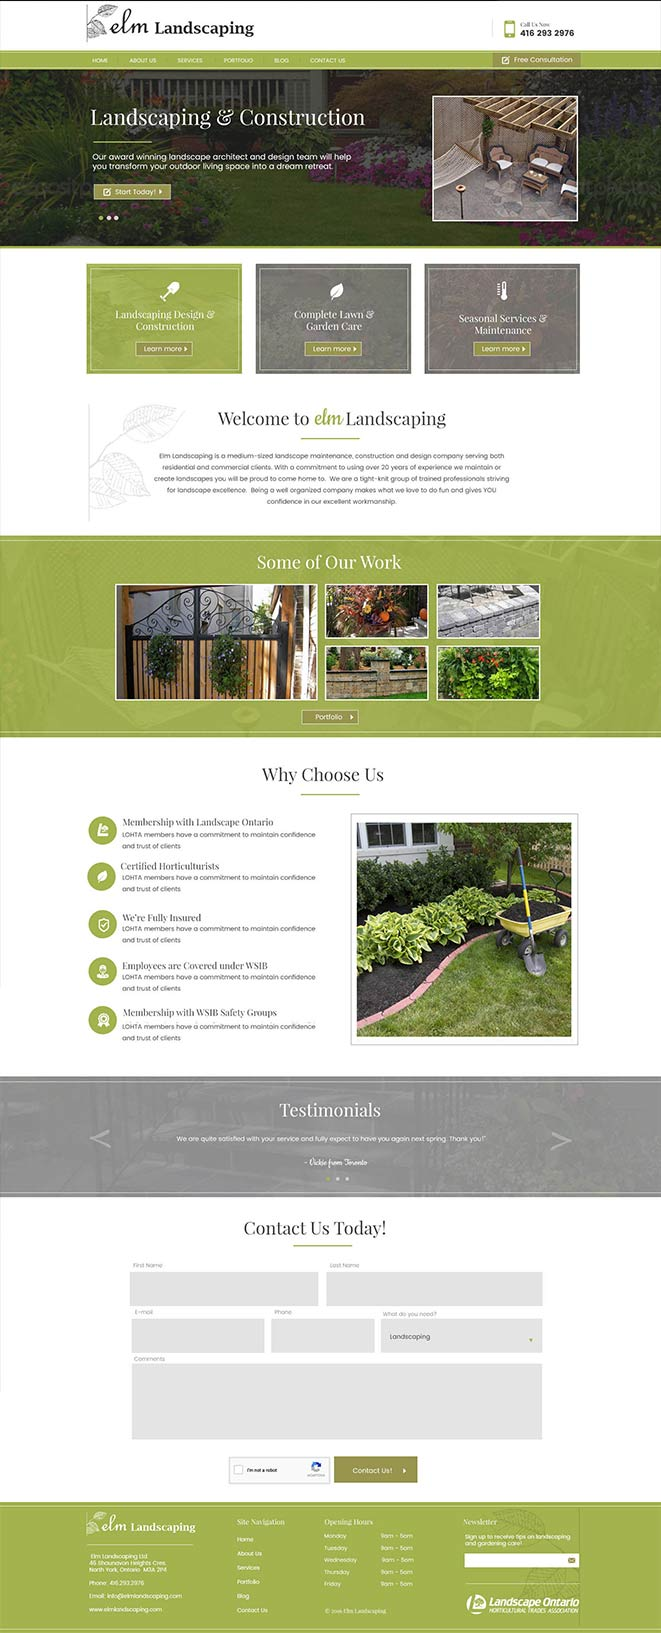 website design elm landscaping